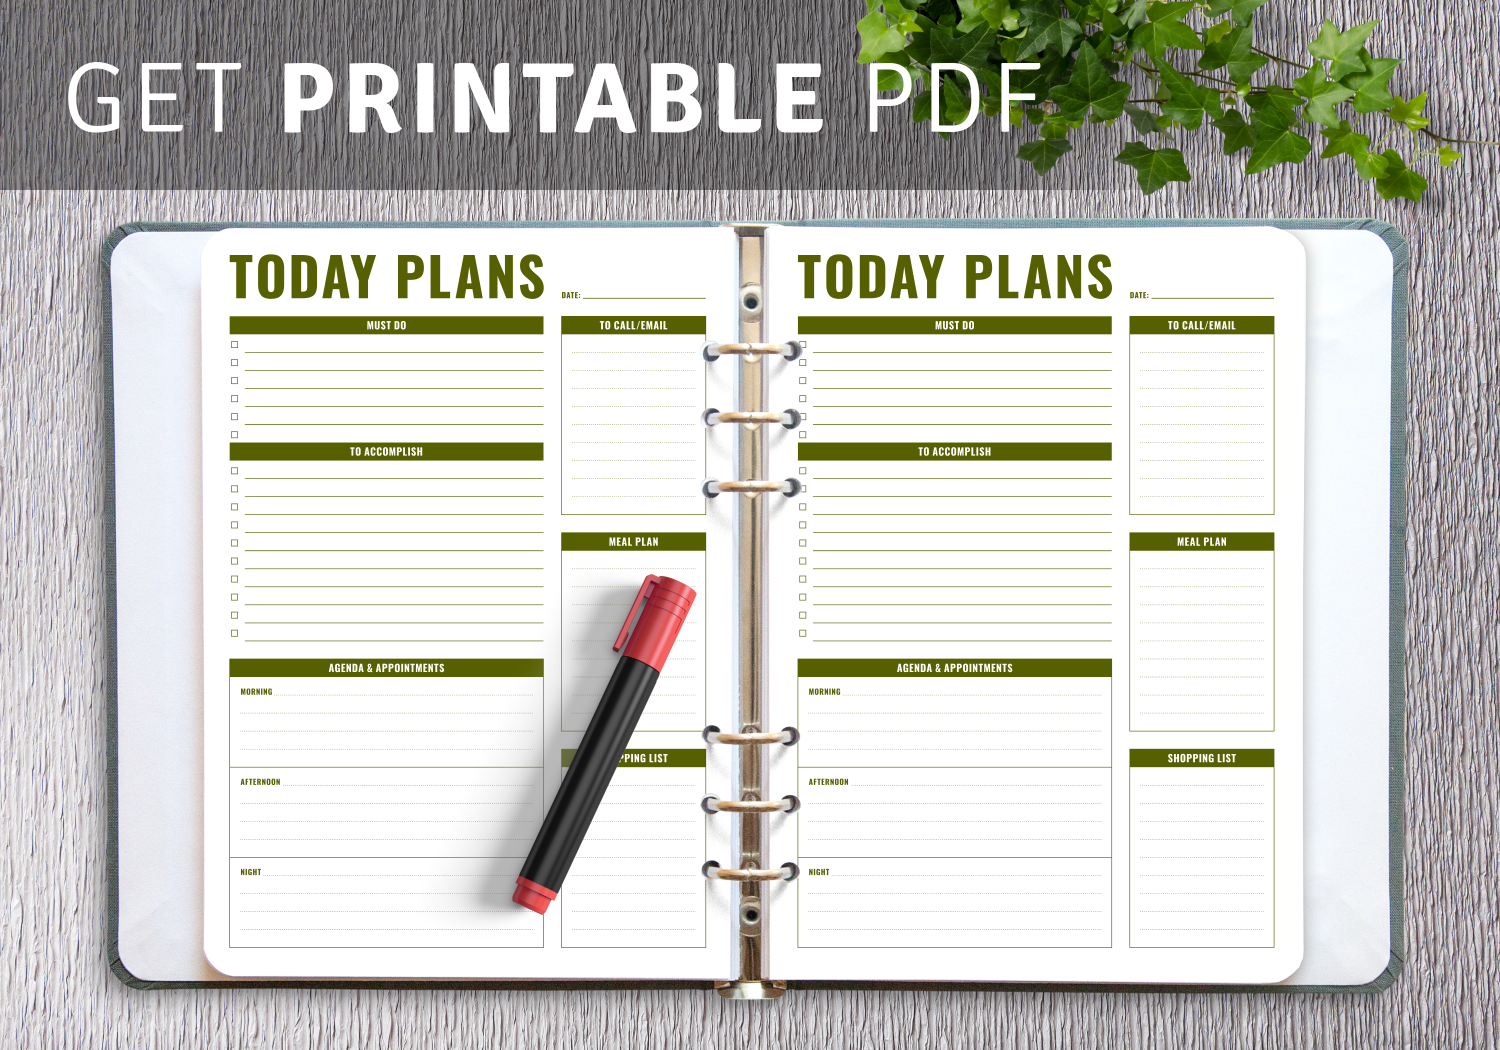 Printable Prioritized Daily Task List Templates